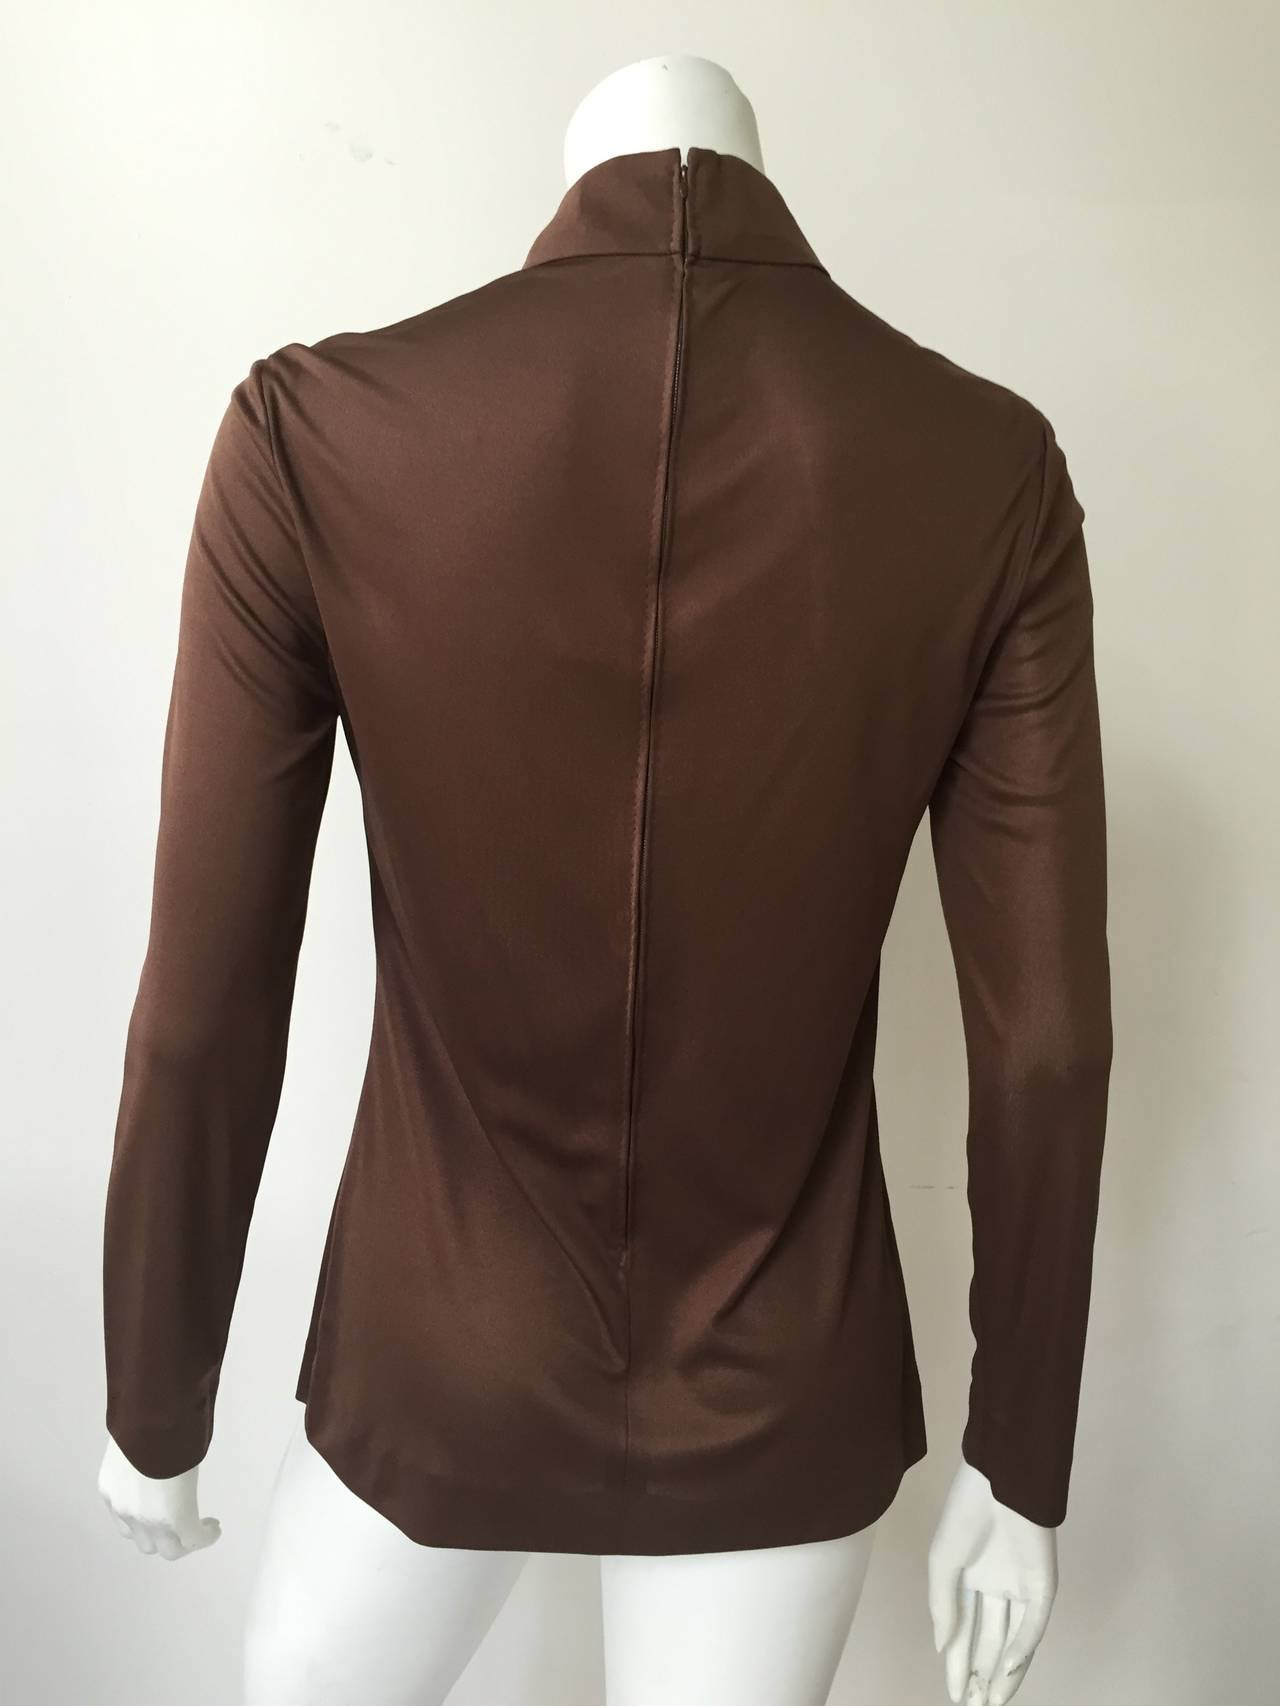 Emilio Pucci 70s Silk Brown Blouse Size 6. 5